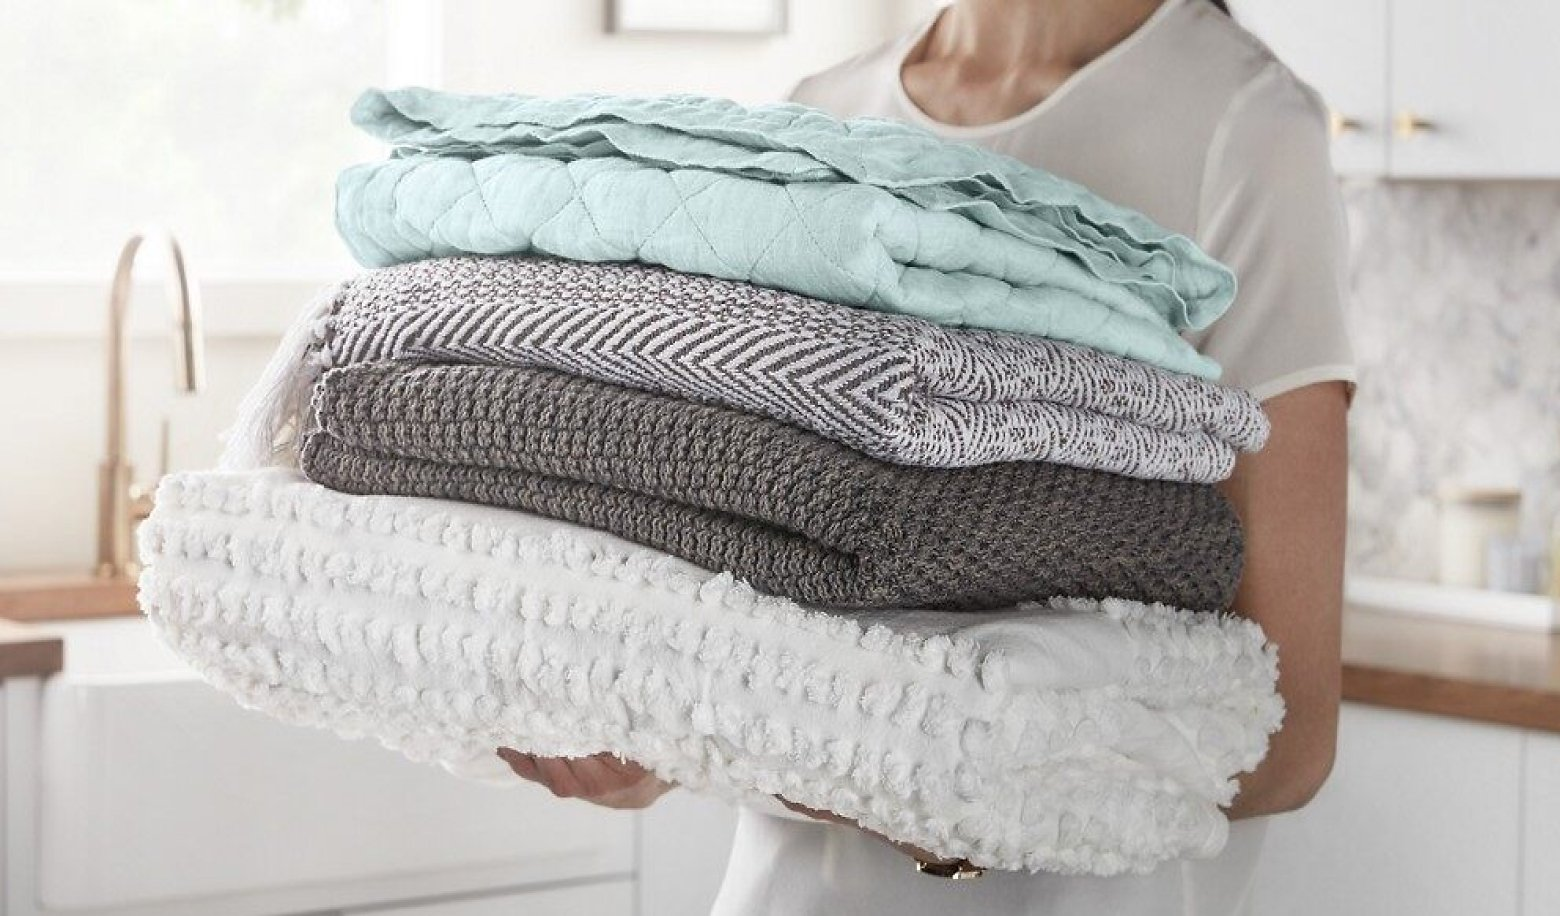 Woman carrying a stack of folded blankets